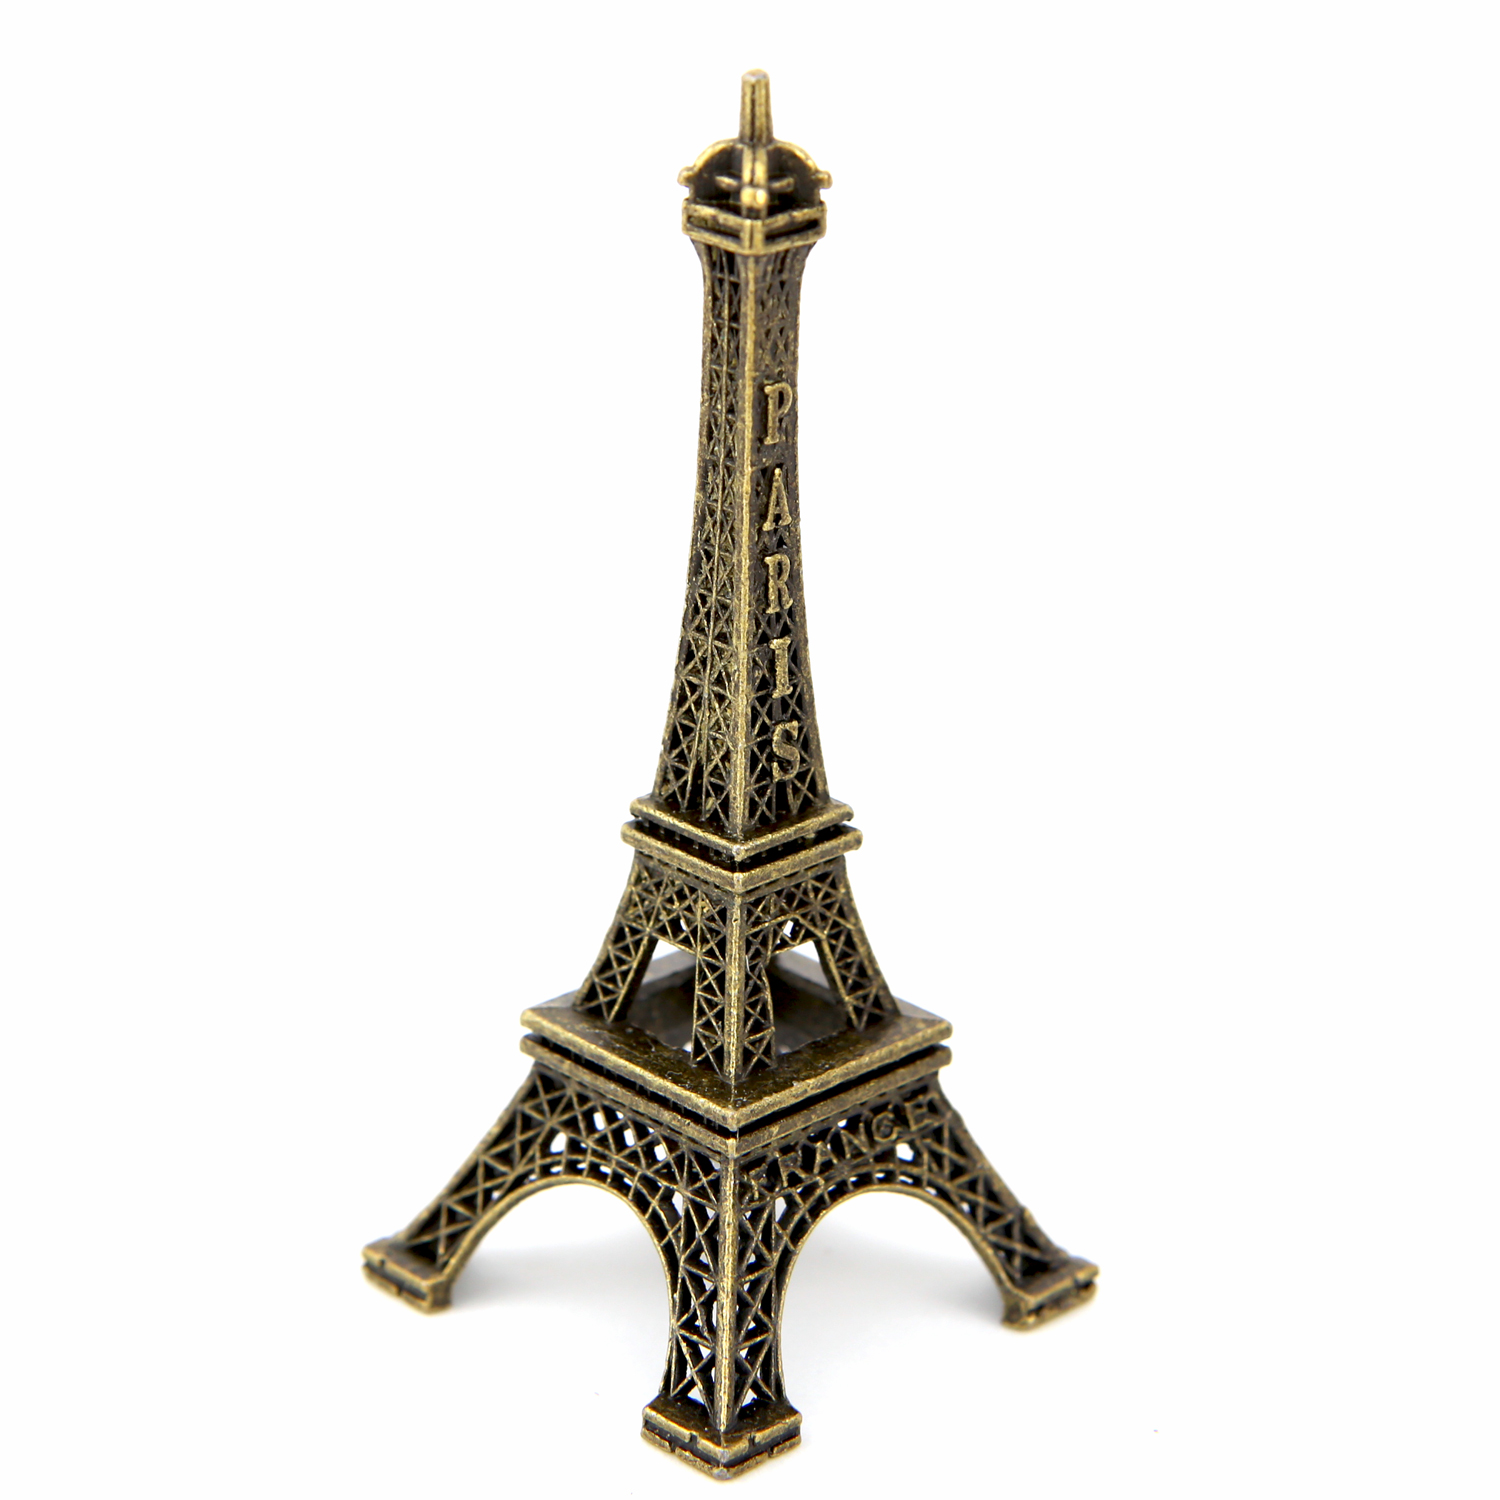 Lot tour eiffel souvenir de paris couleurs bronze 9.5 cm TE9B